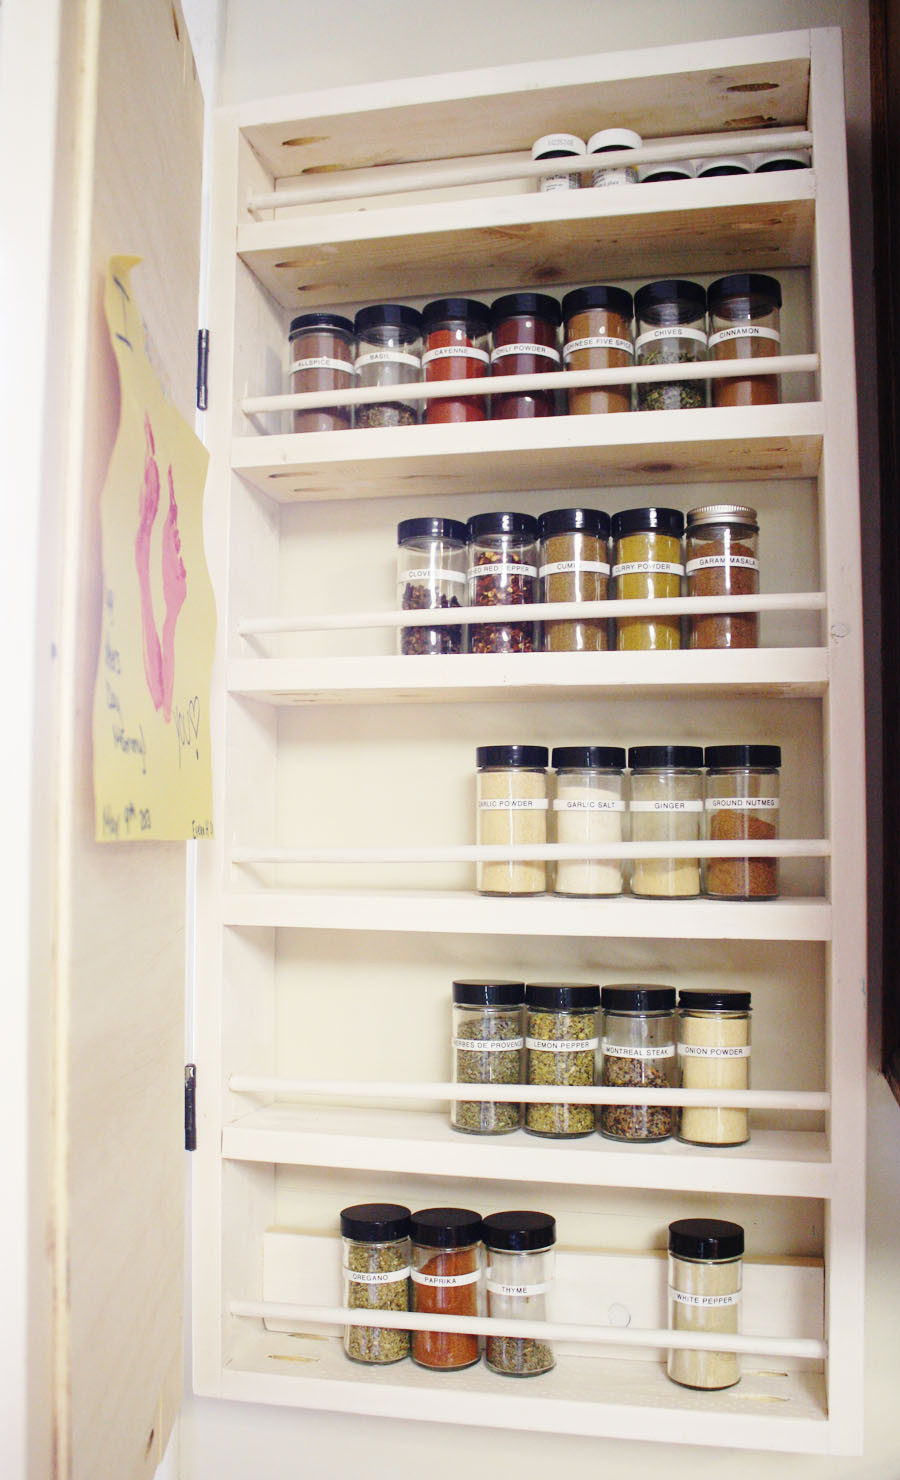 Best ideas about Cabinet Door Spice Rack DIY . Save or Pin How To Build A DIY Spice Rack Now.